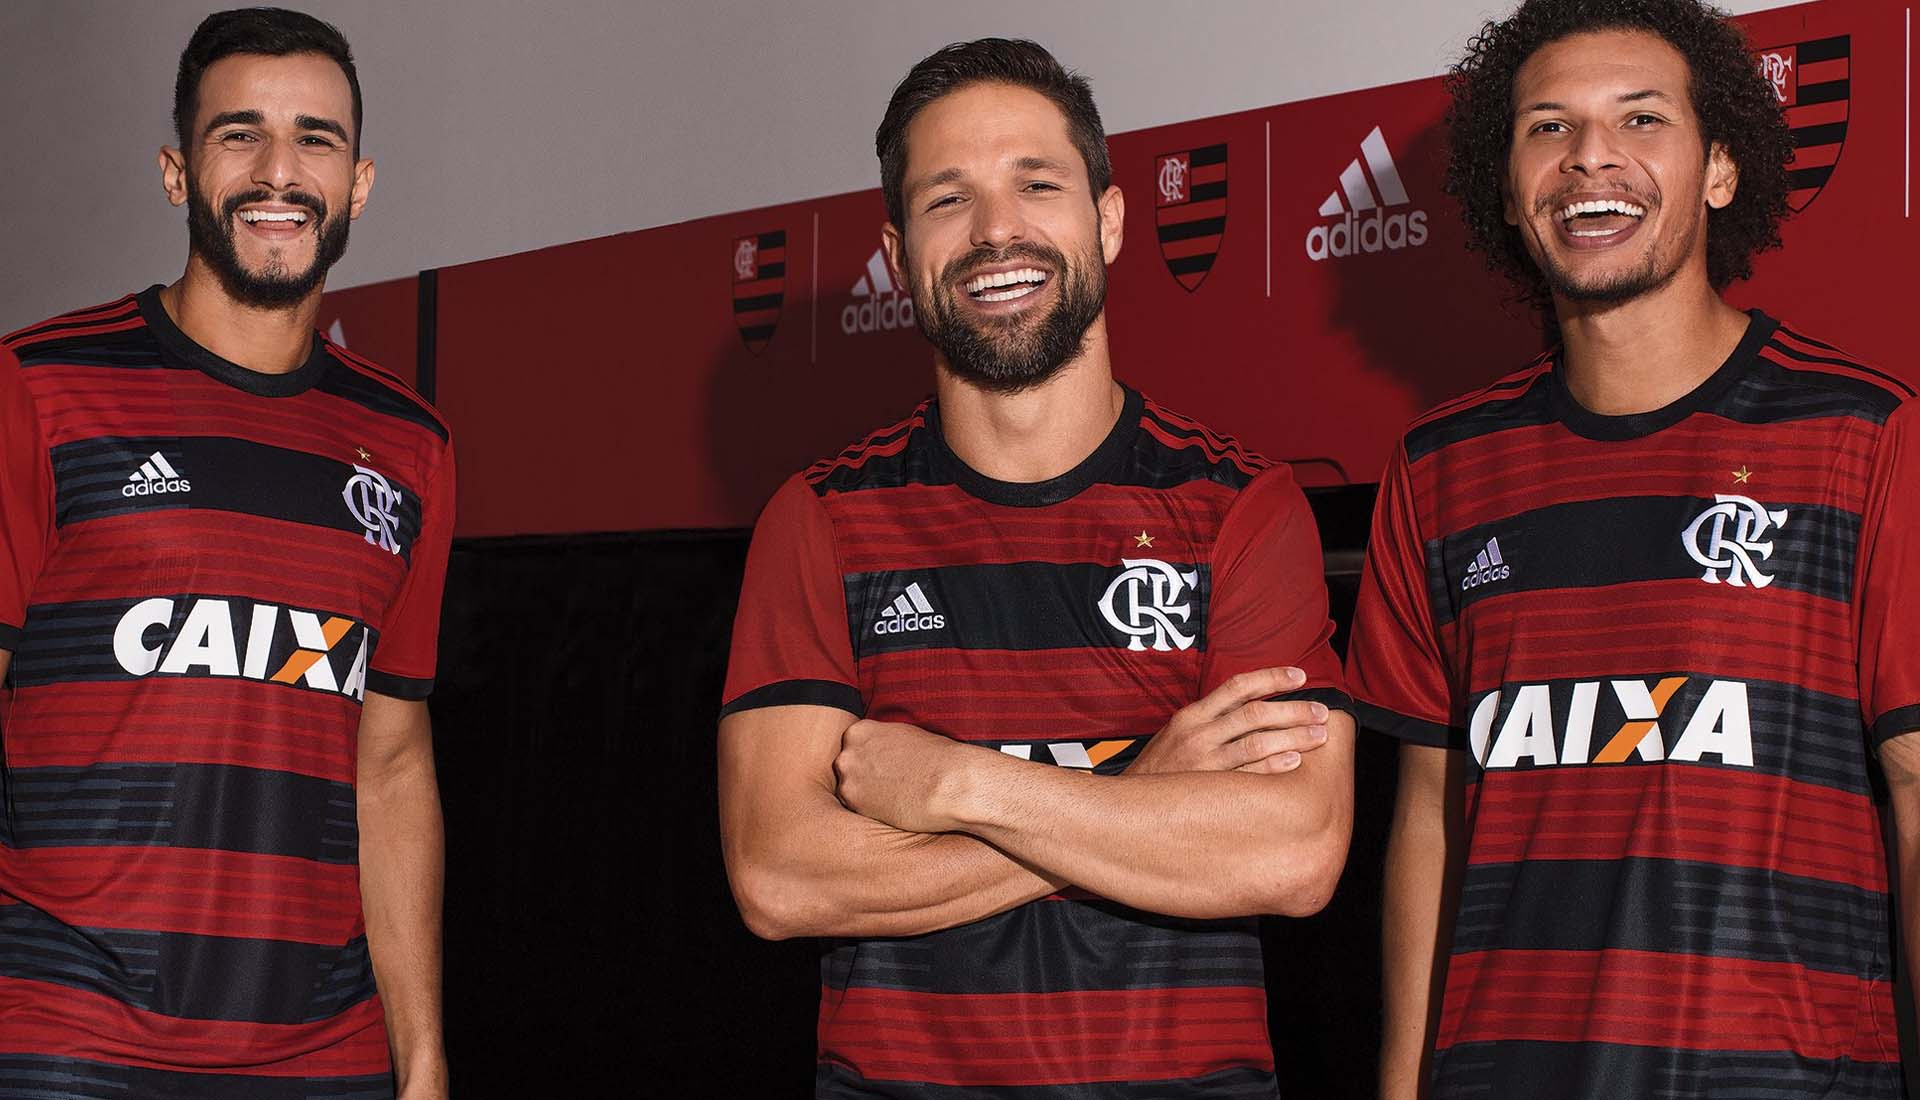 adidas Launch Flamengo 18 19 Home Shirt - SoccerBible 6c49a82a9